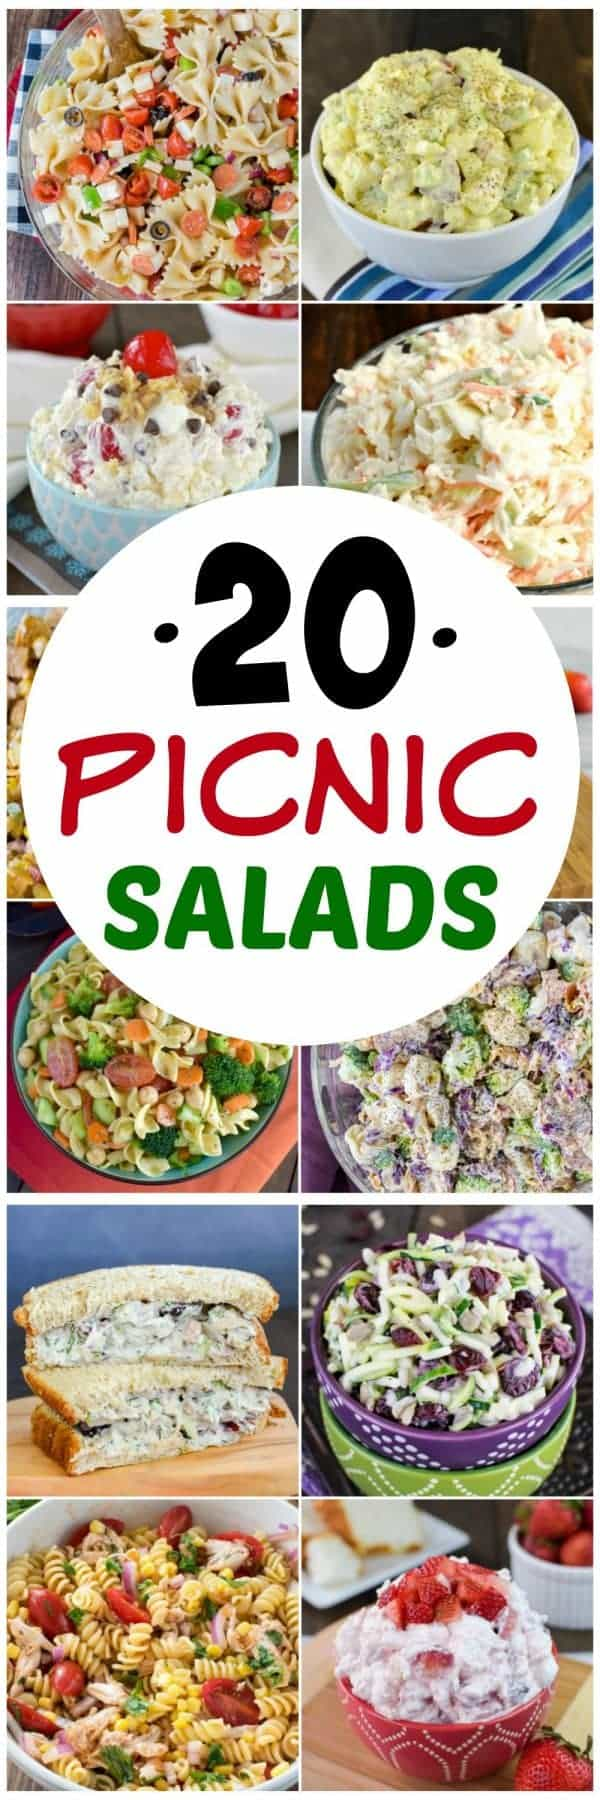 20 Picnic Salads - any of these sweet and savory salads are perfect for any picnics or parties this summer. Great recipes to share with friends!